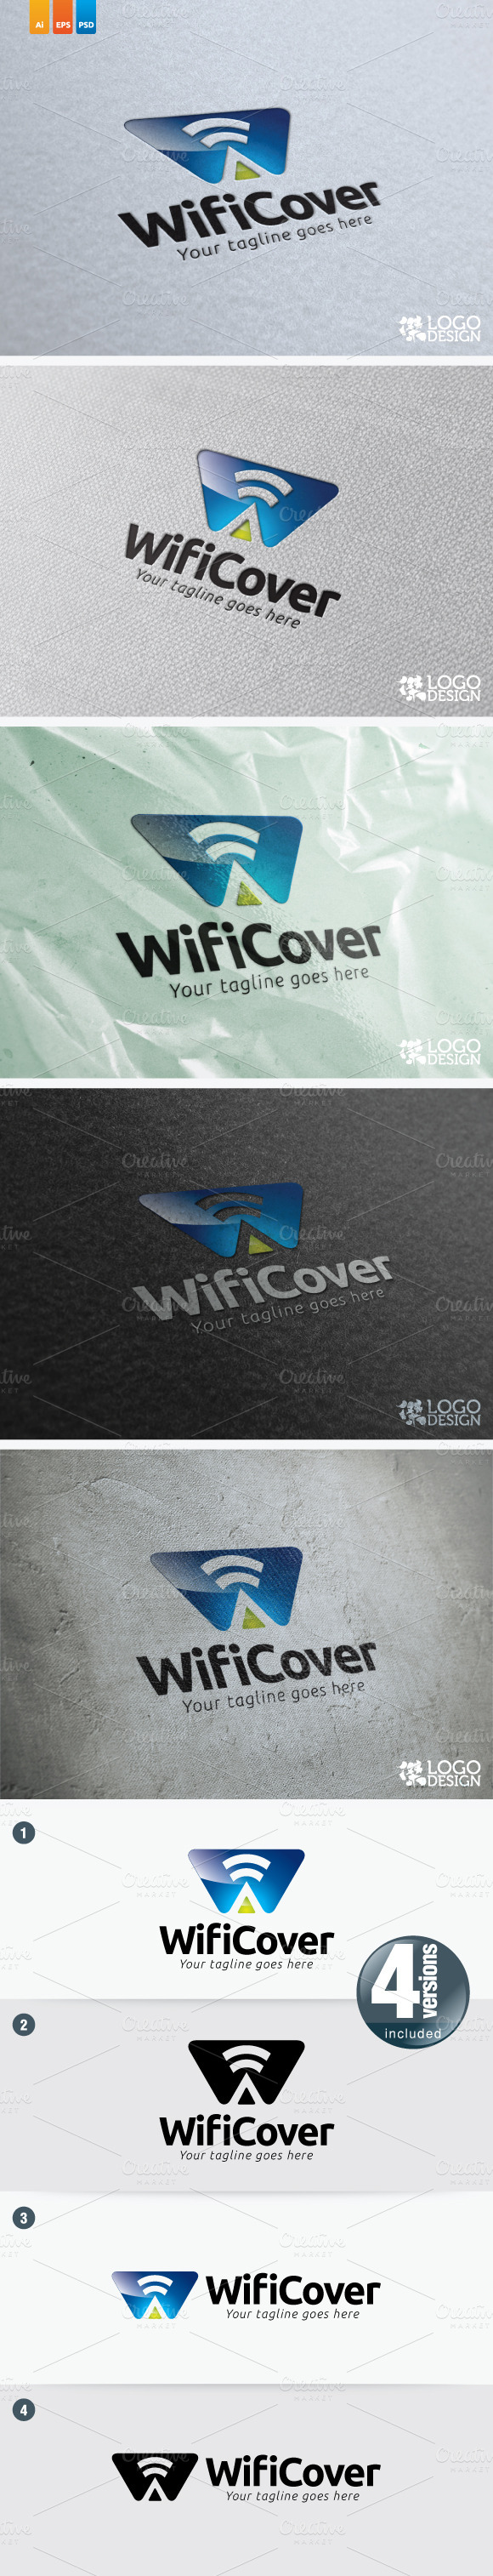 Wifi Cover